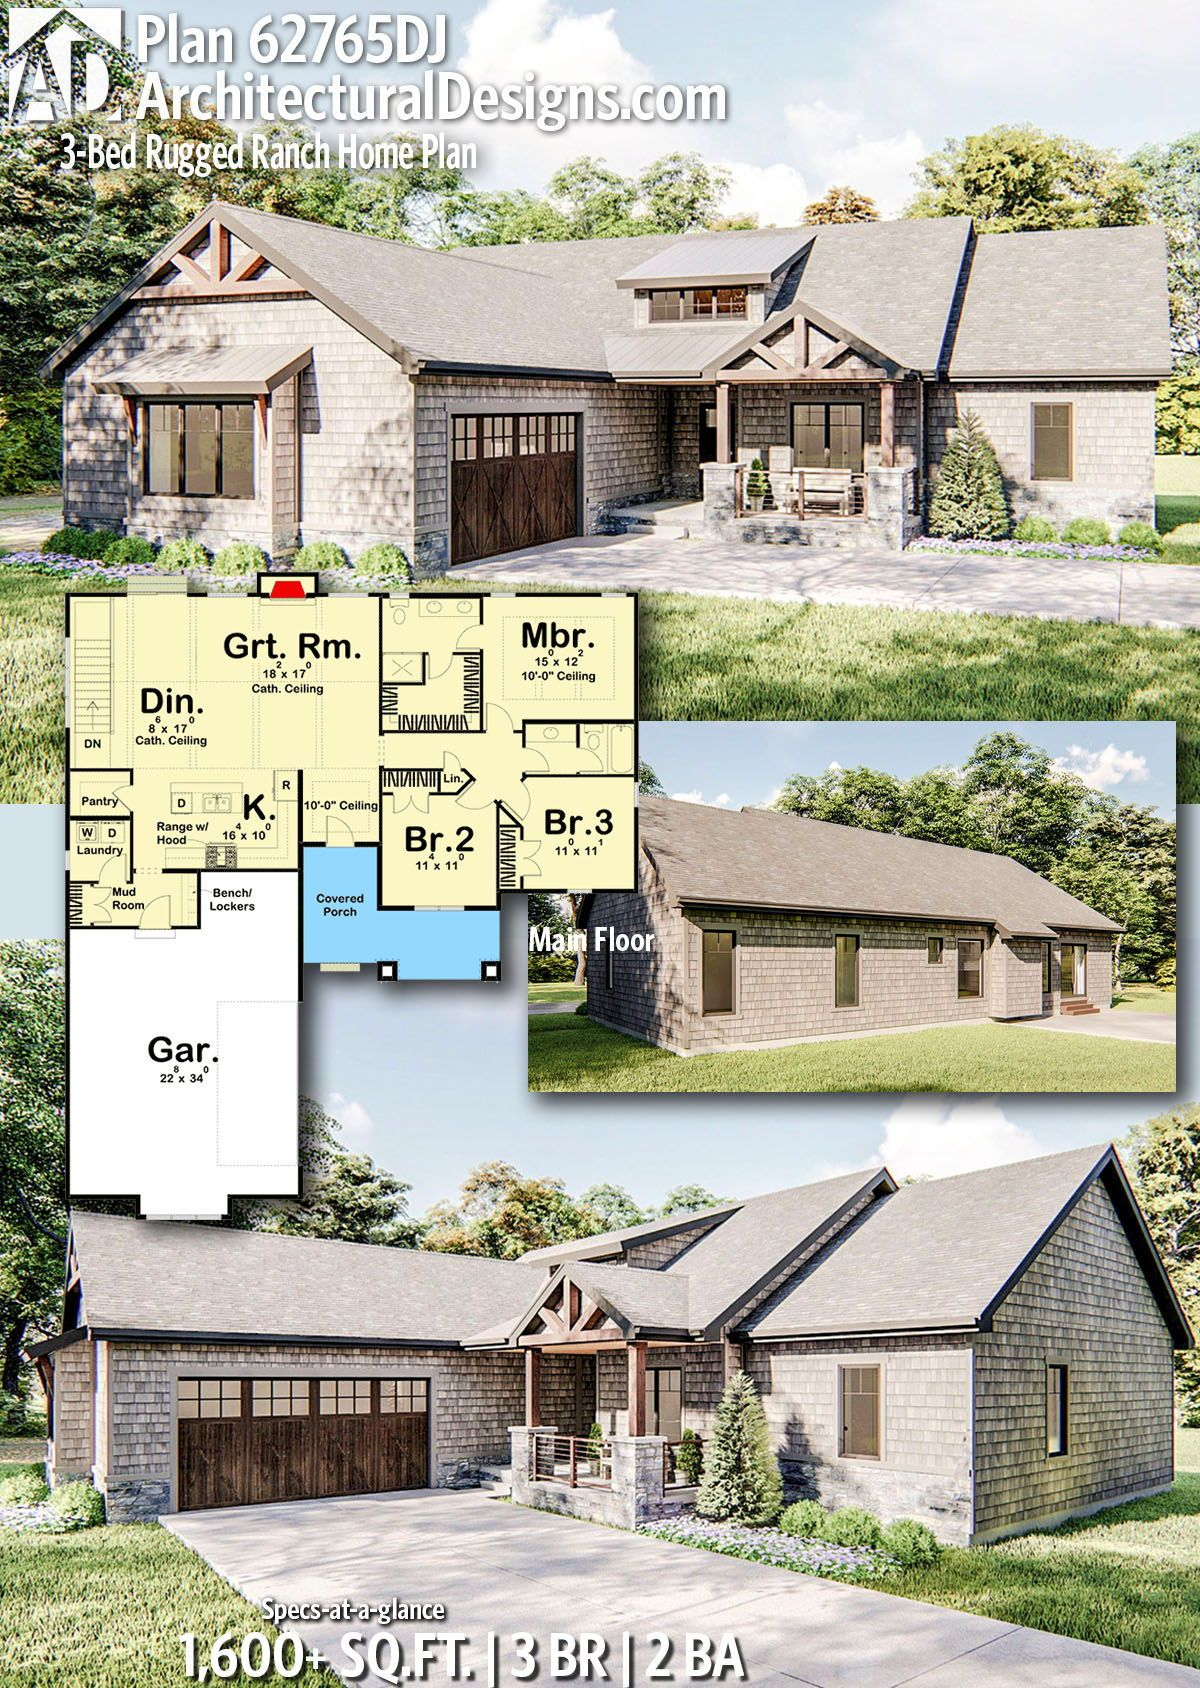 Plan 62765dj 3 Bed Rugged Ranch Home Plan Ranch House Plans Rustic House Plans House Plans